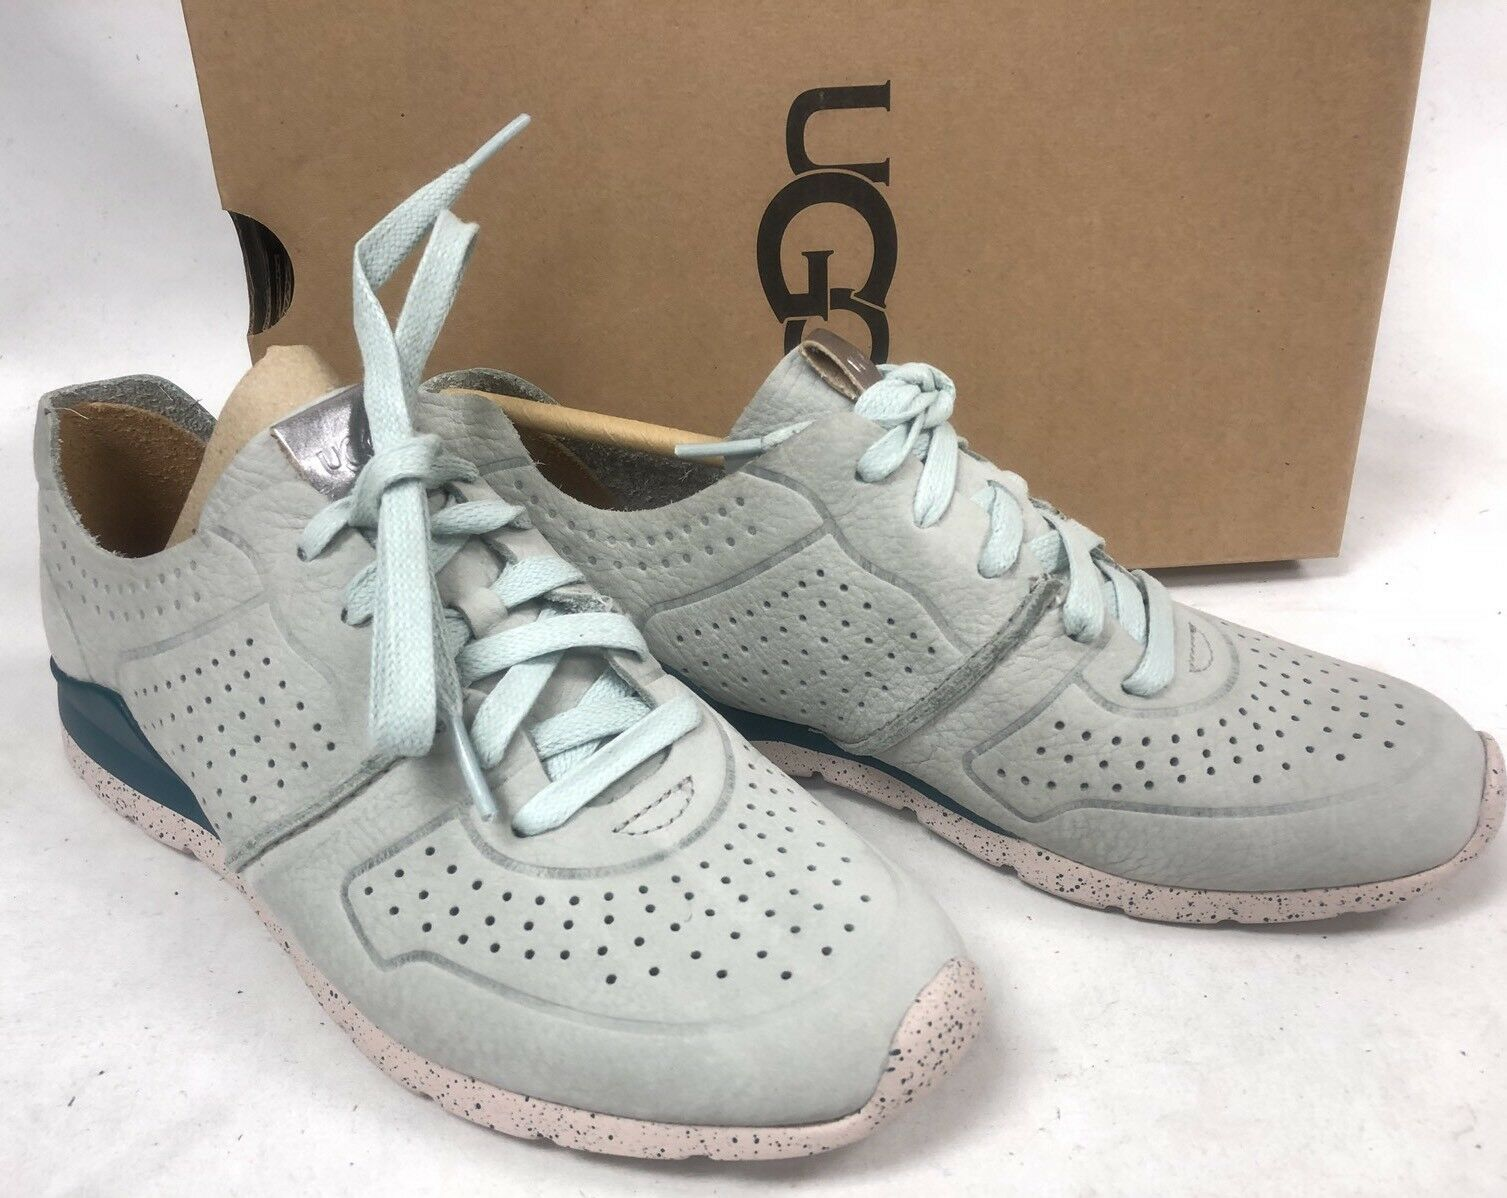 UGG Australia Tye Lace Up Leather Perforated Fashion Sneakers 1019057 Iceberg